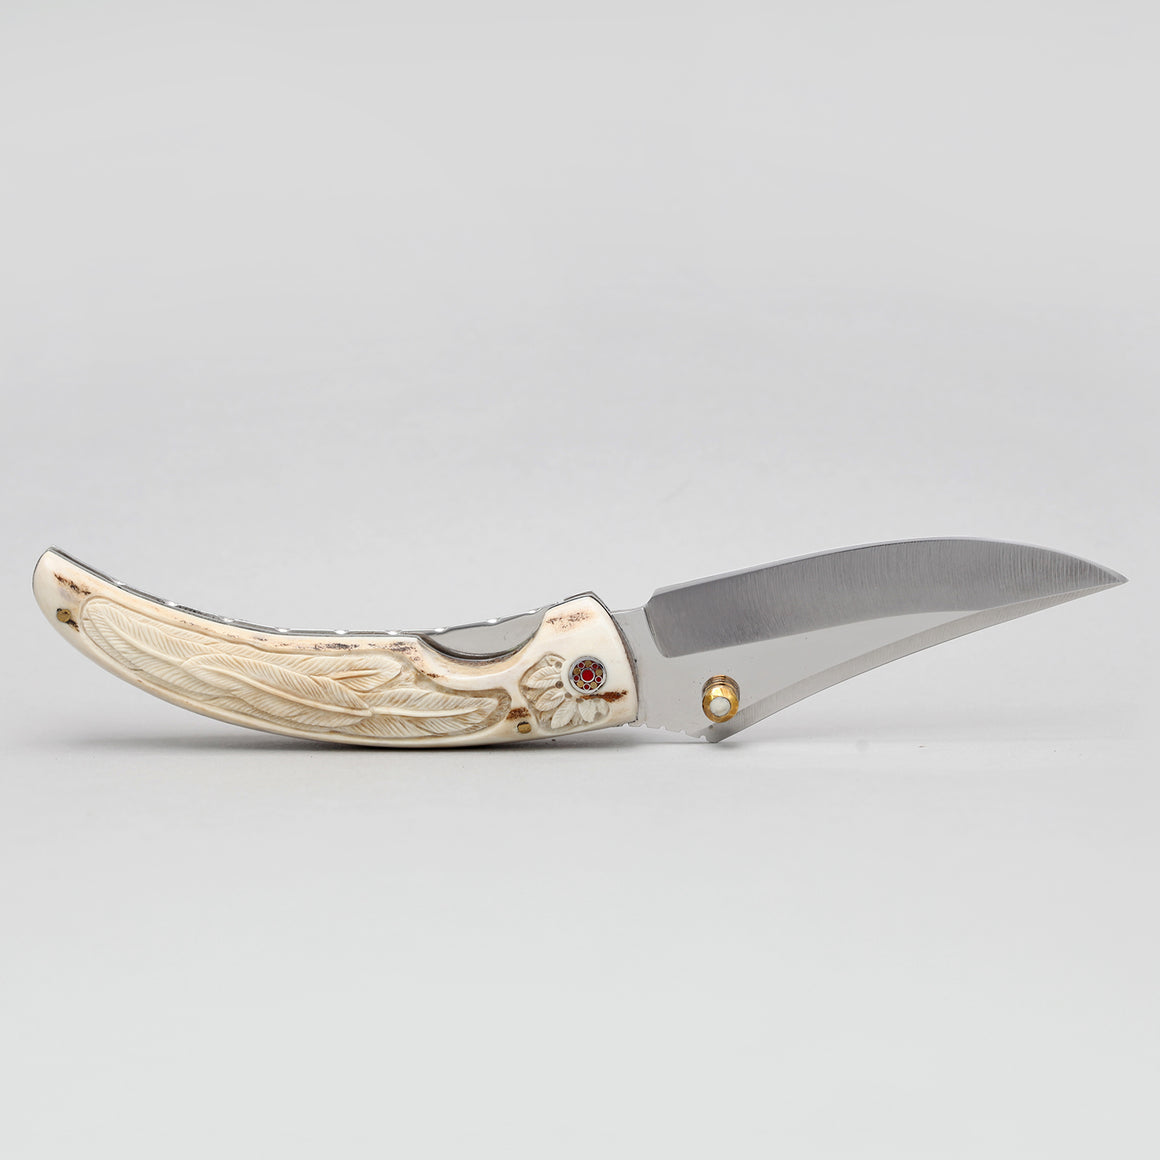 JAPANESE STEEL KNIFE WITH FEATHER ETCHING ON DEER ANTLER